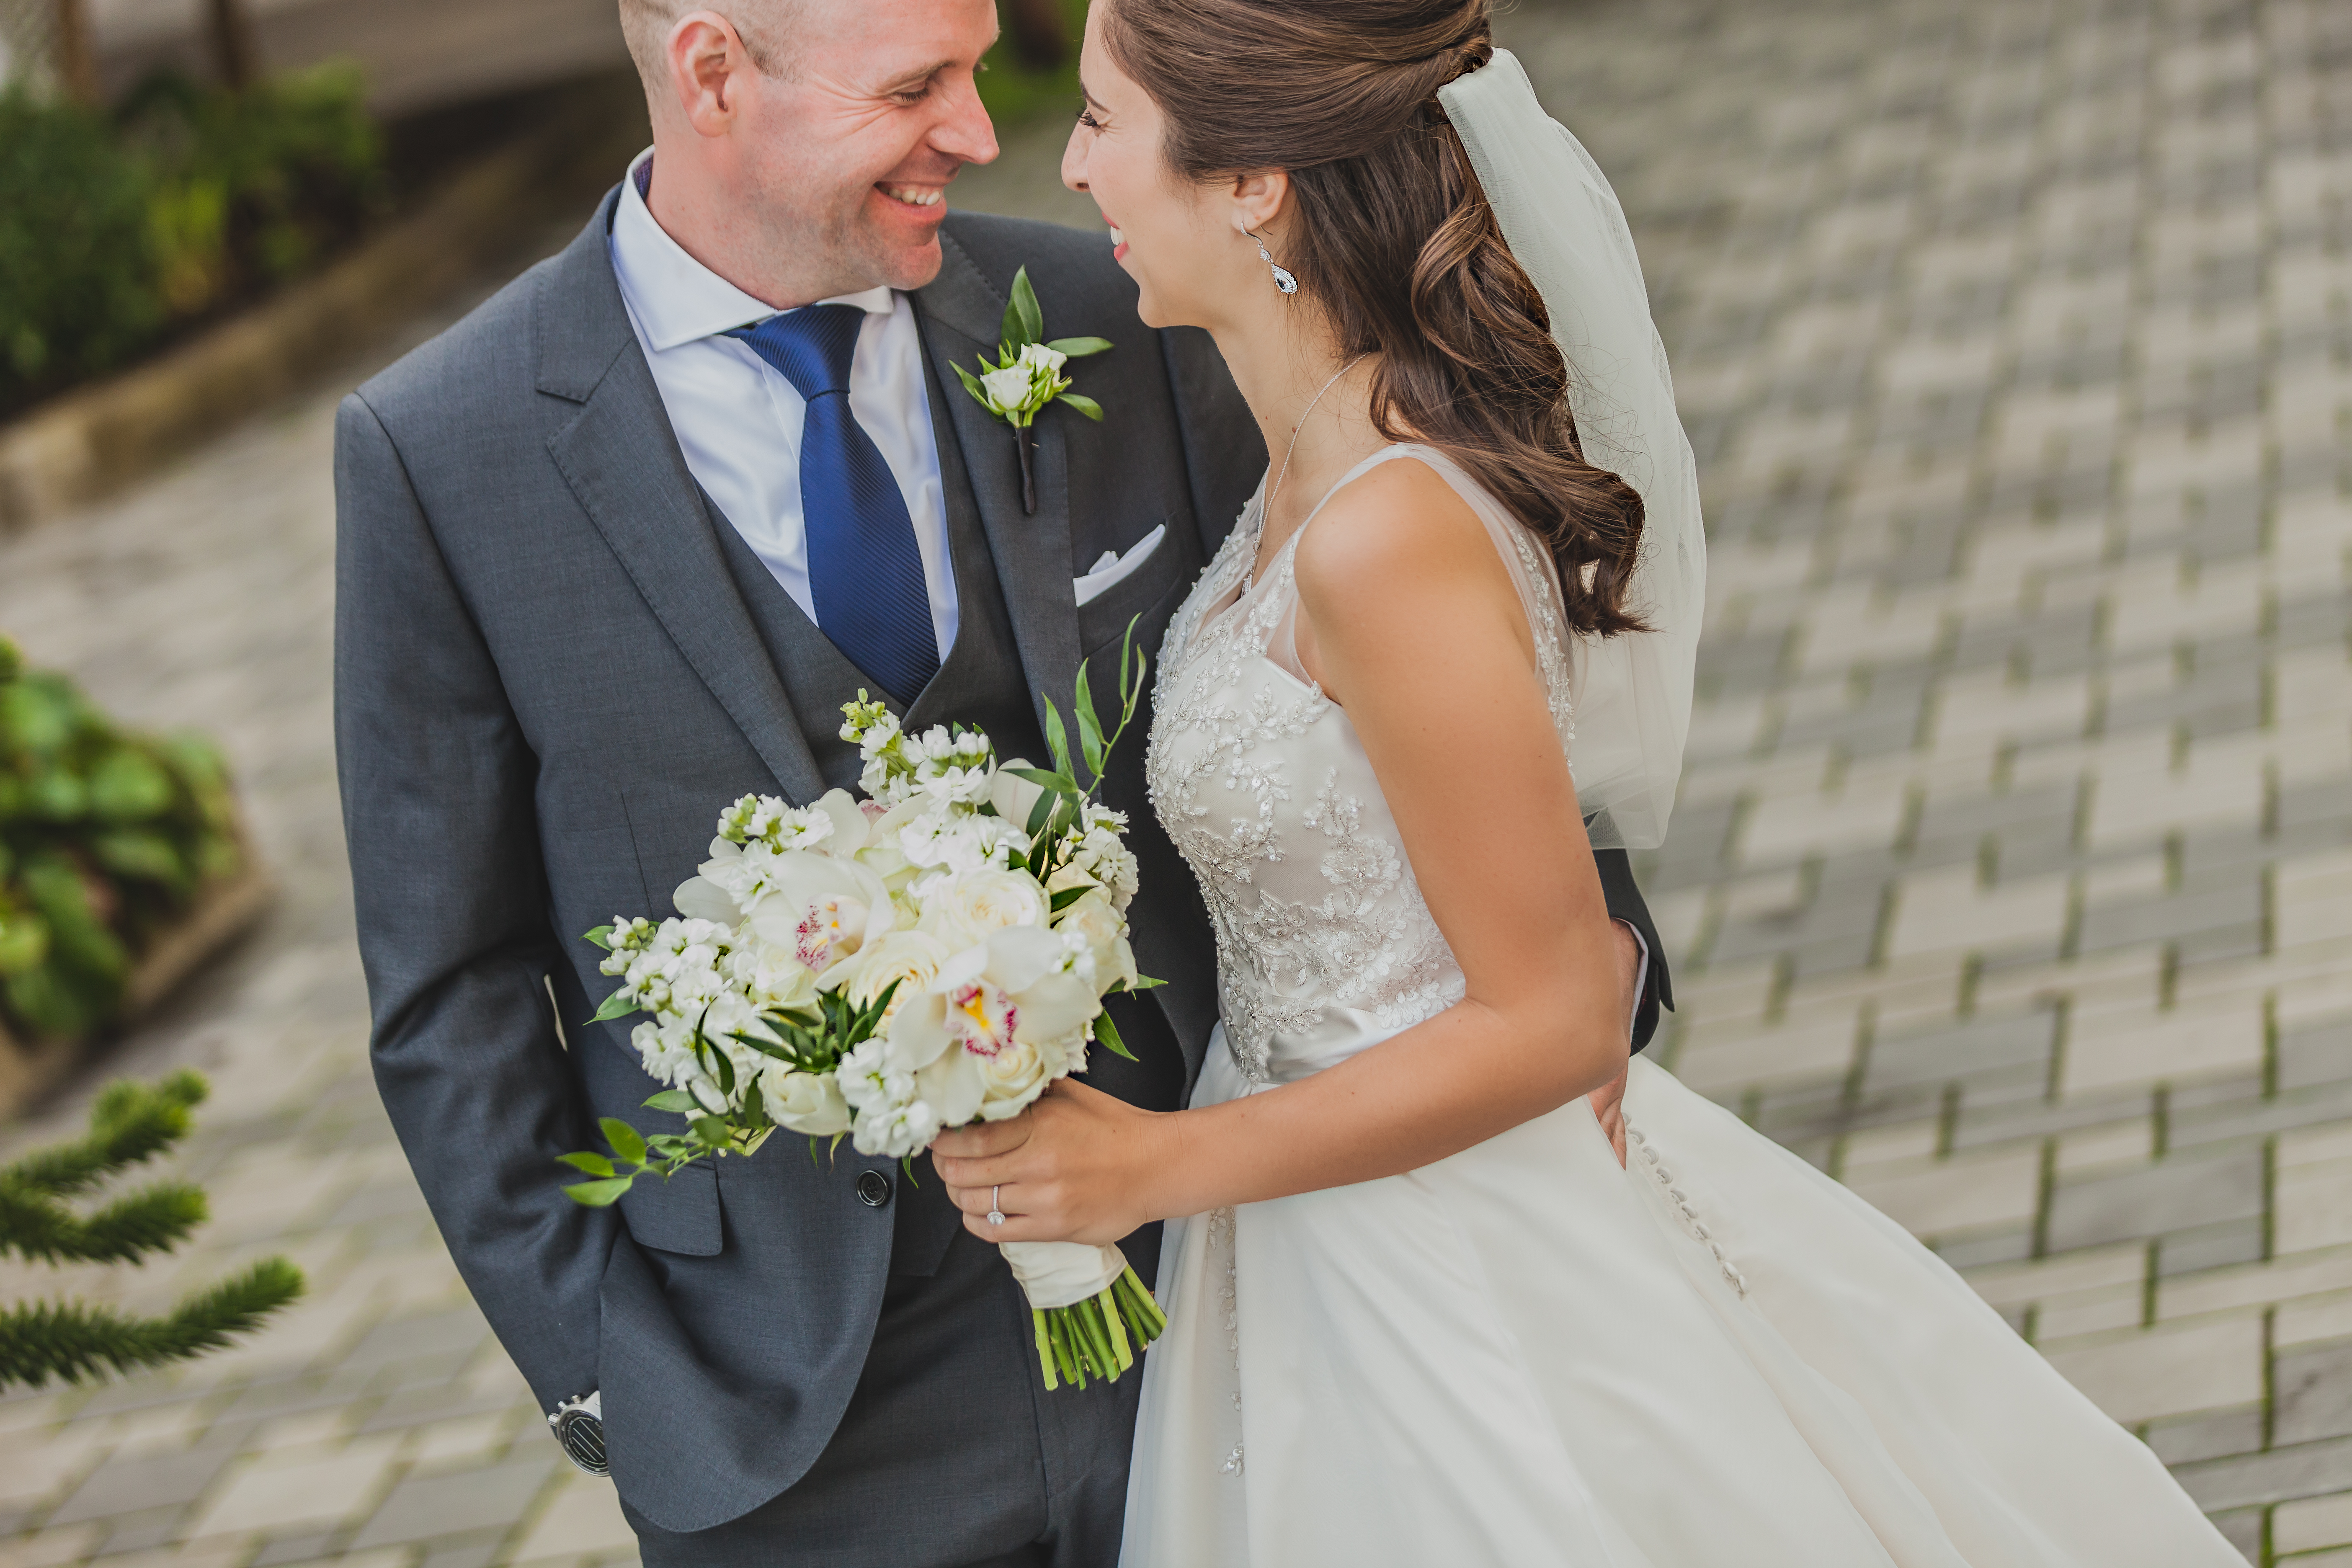 Nicloe and Andy hotel all inclusive wedding packages by destination weddings victoria